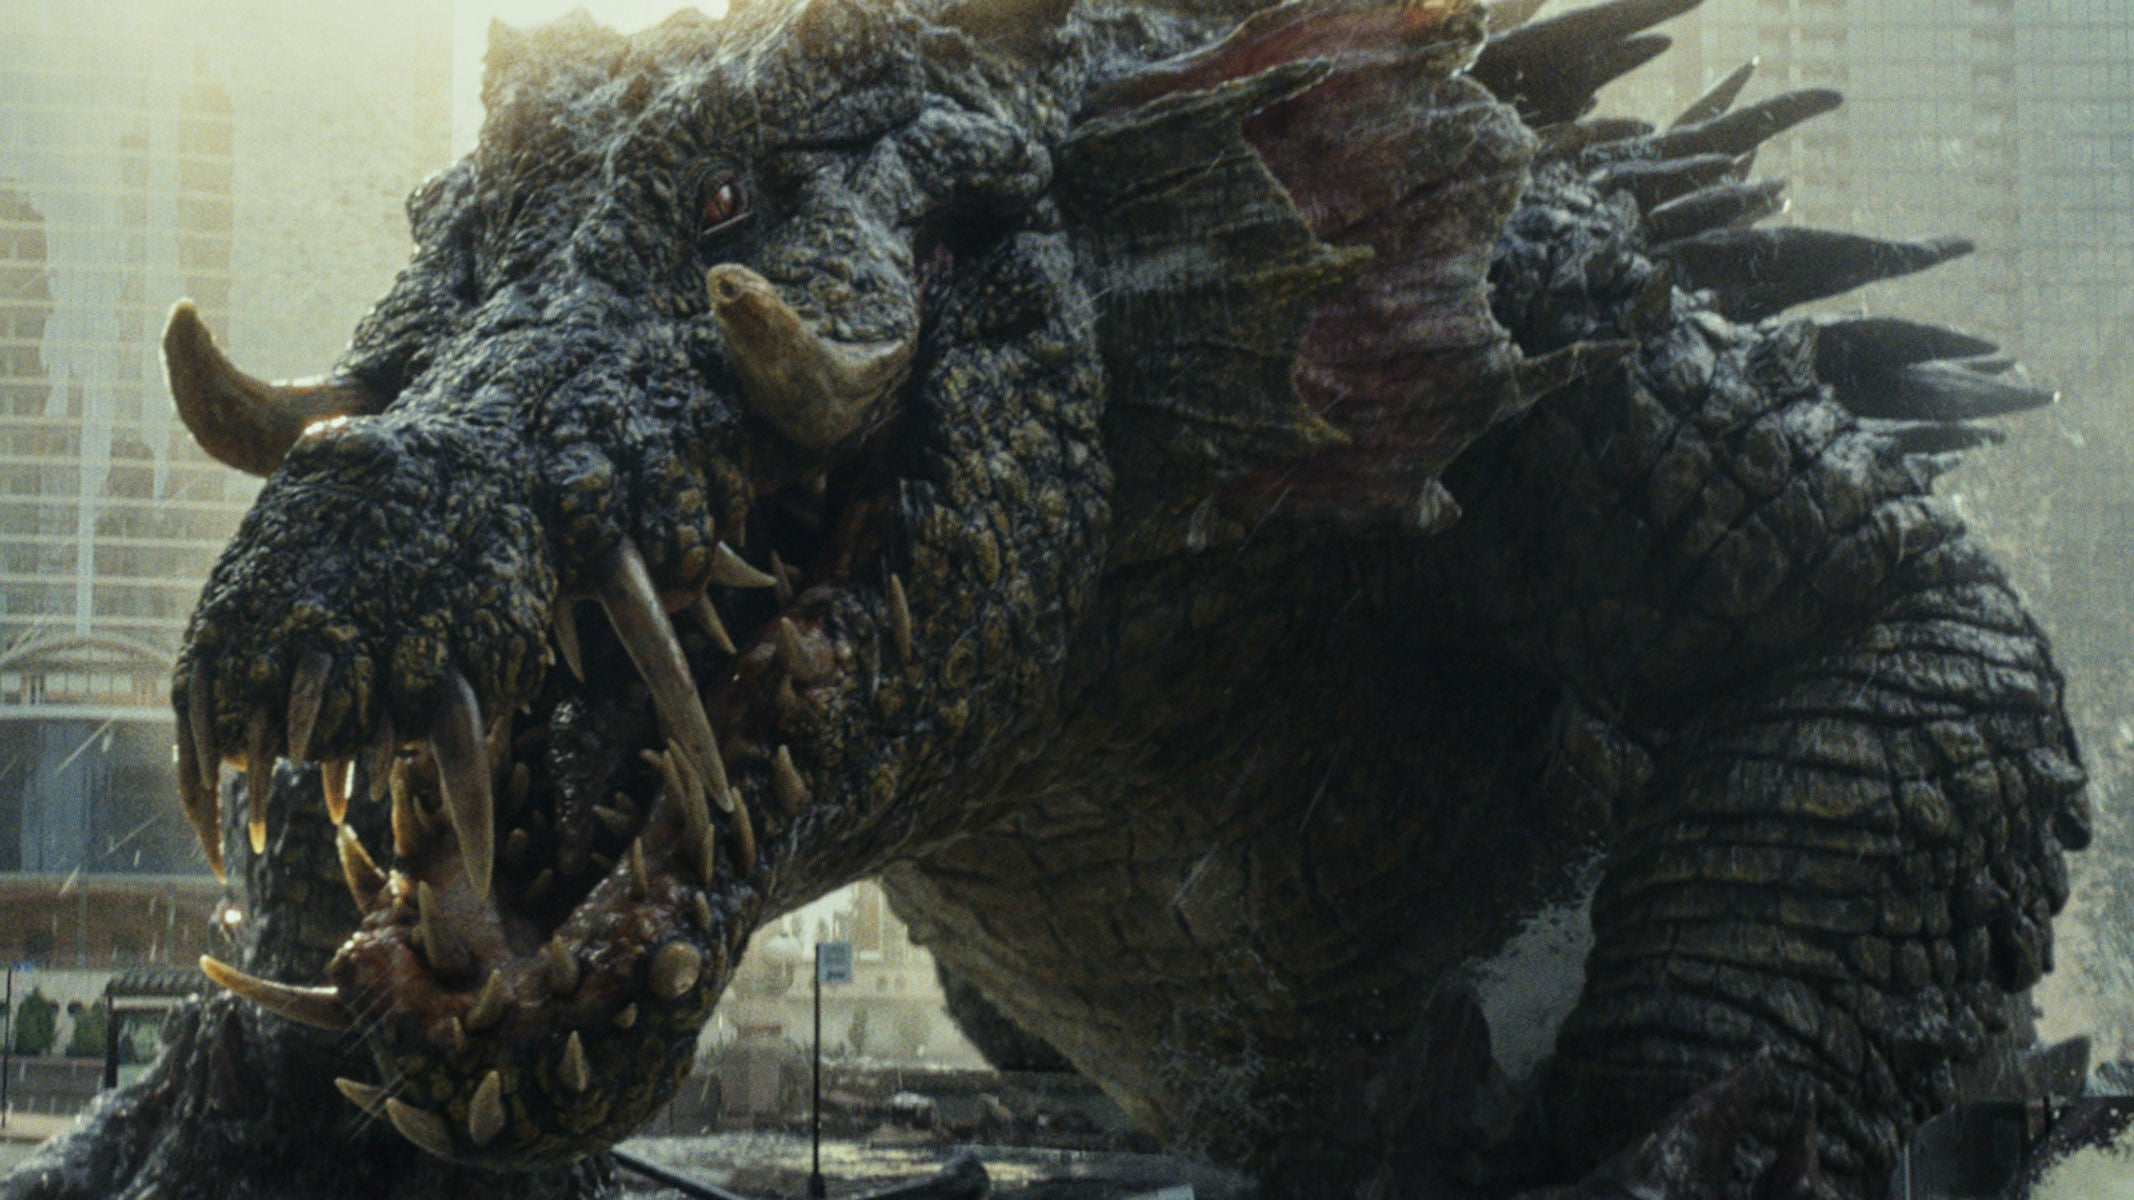 How The Hell Did The Giant Alligator In Rampage Sneak From Florida To Chicago?